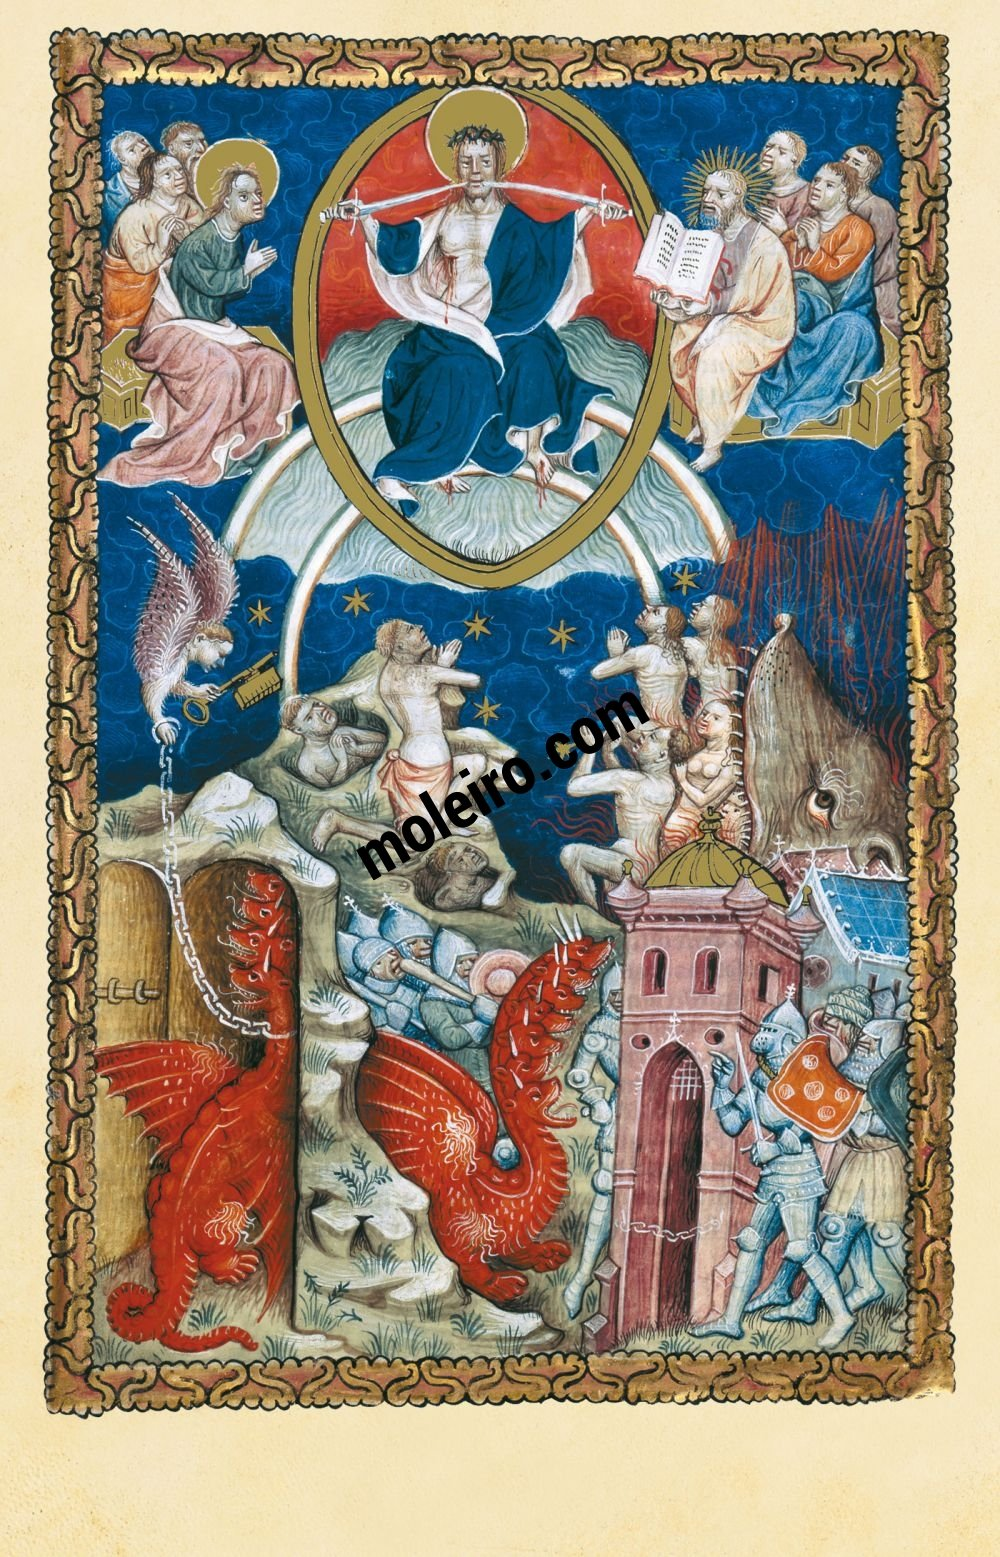 Flemish Apocalypse f. 18r, The Last Judgment and Satan bound for a thousand years